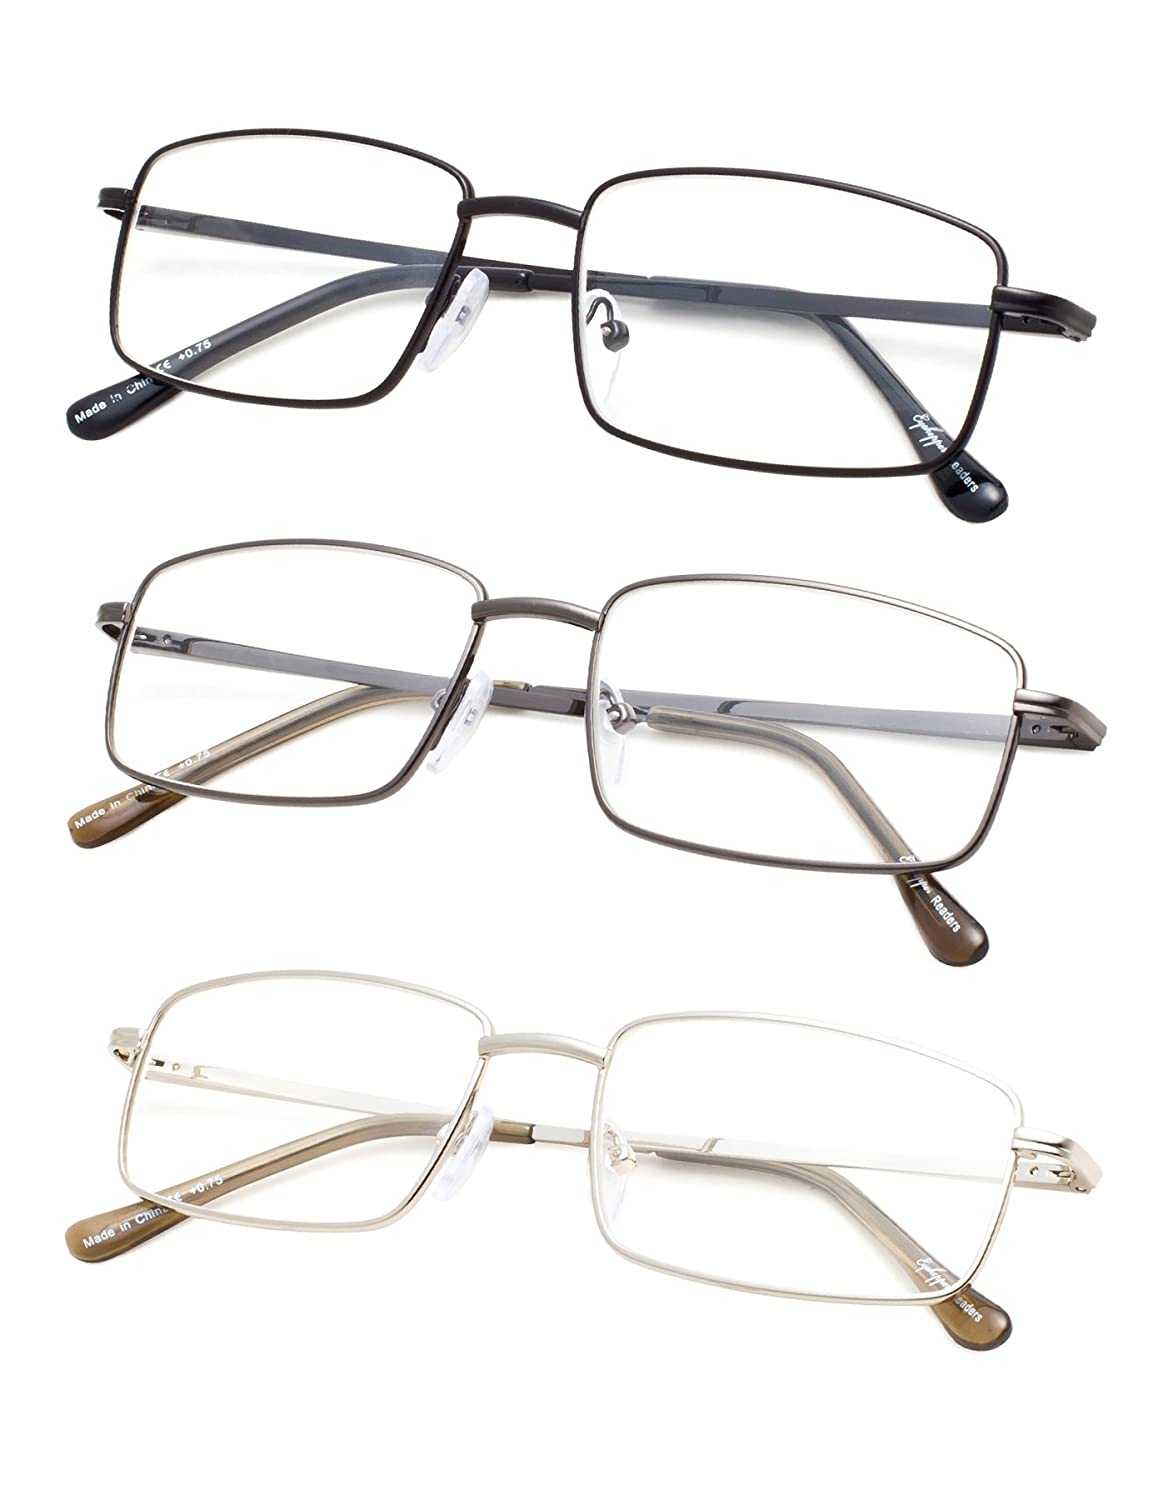 184aa541da71 metal frame plastic lens non-polarized. Lens width  53 millimeters 3 pack  at 1 low price spring temple reading glasses. Reading glasses for men at  most of ...